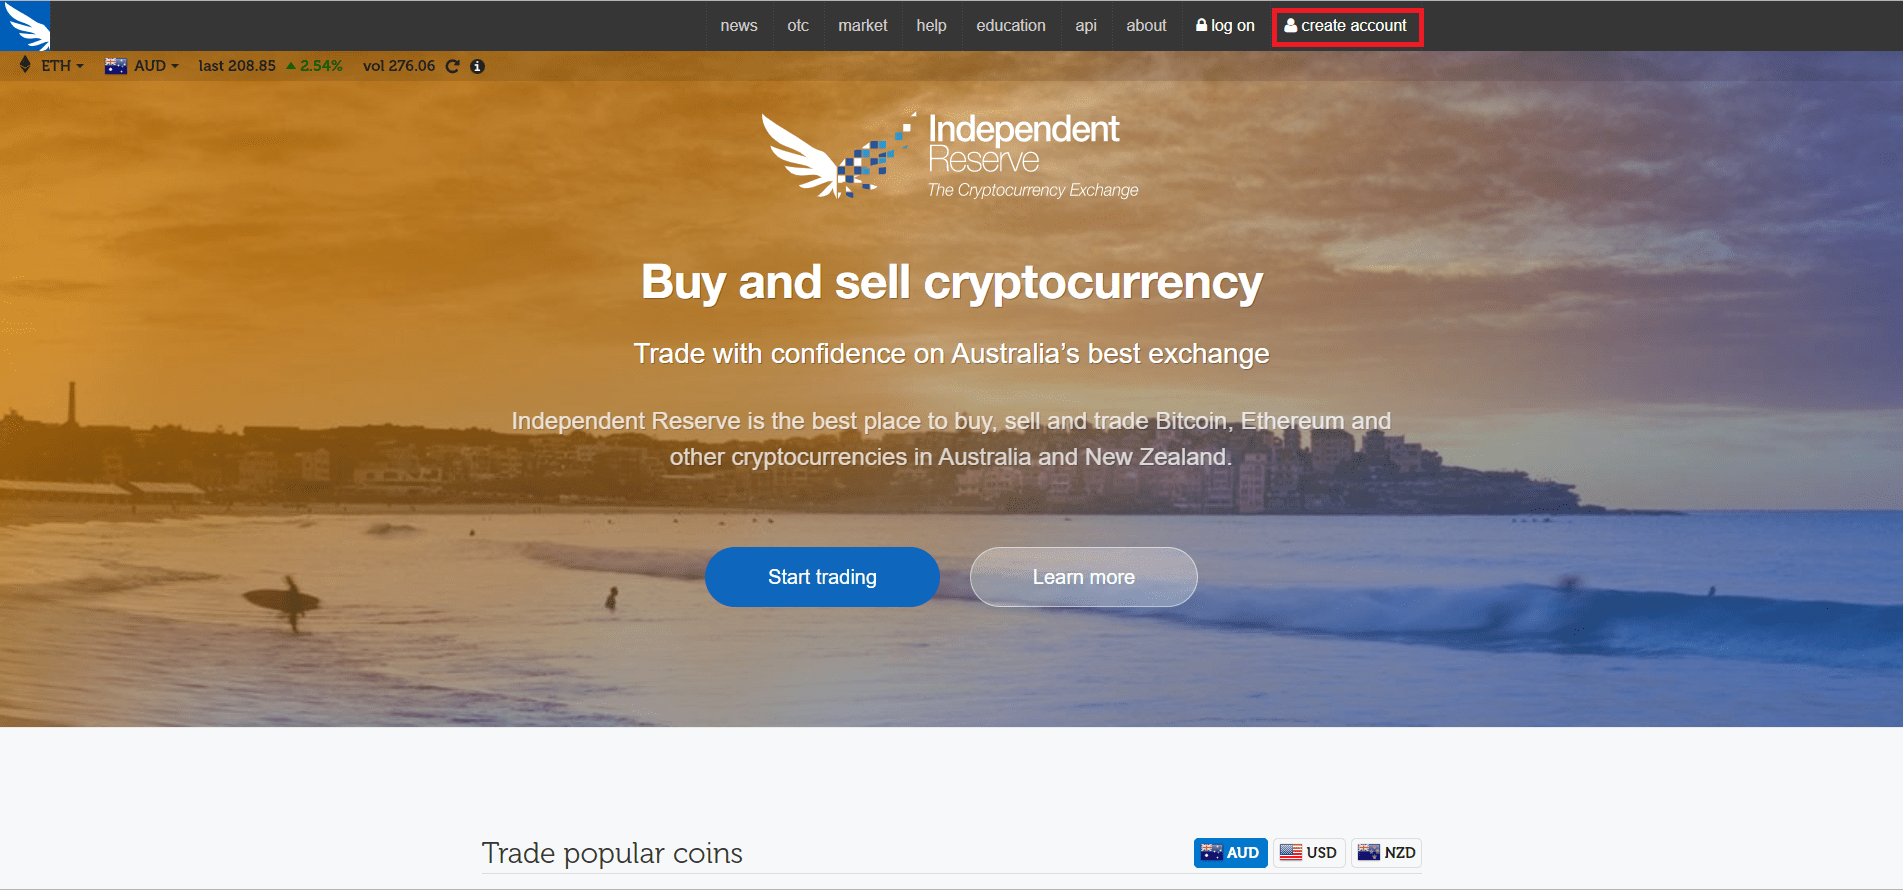 Create an account - Independent Reserve